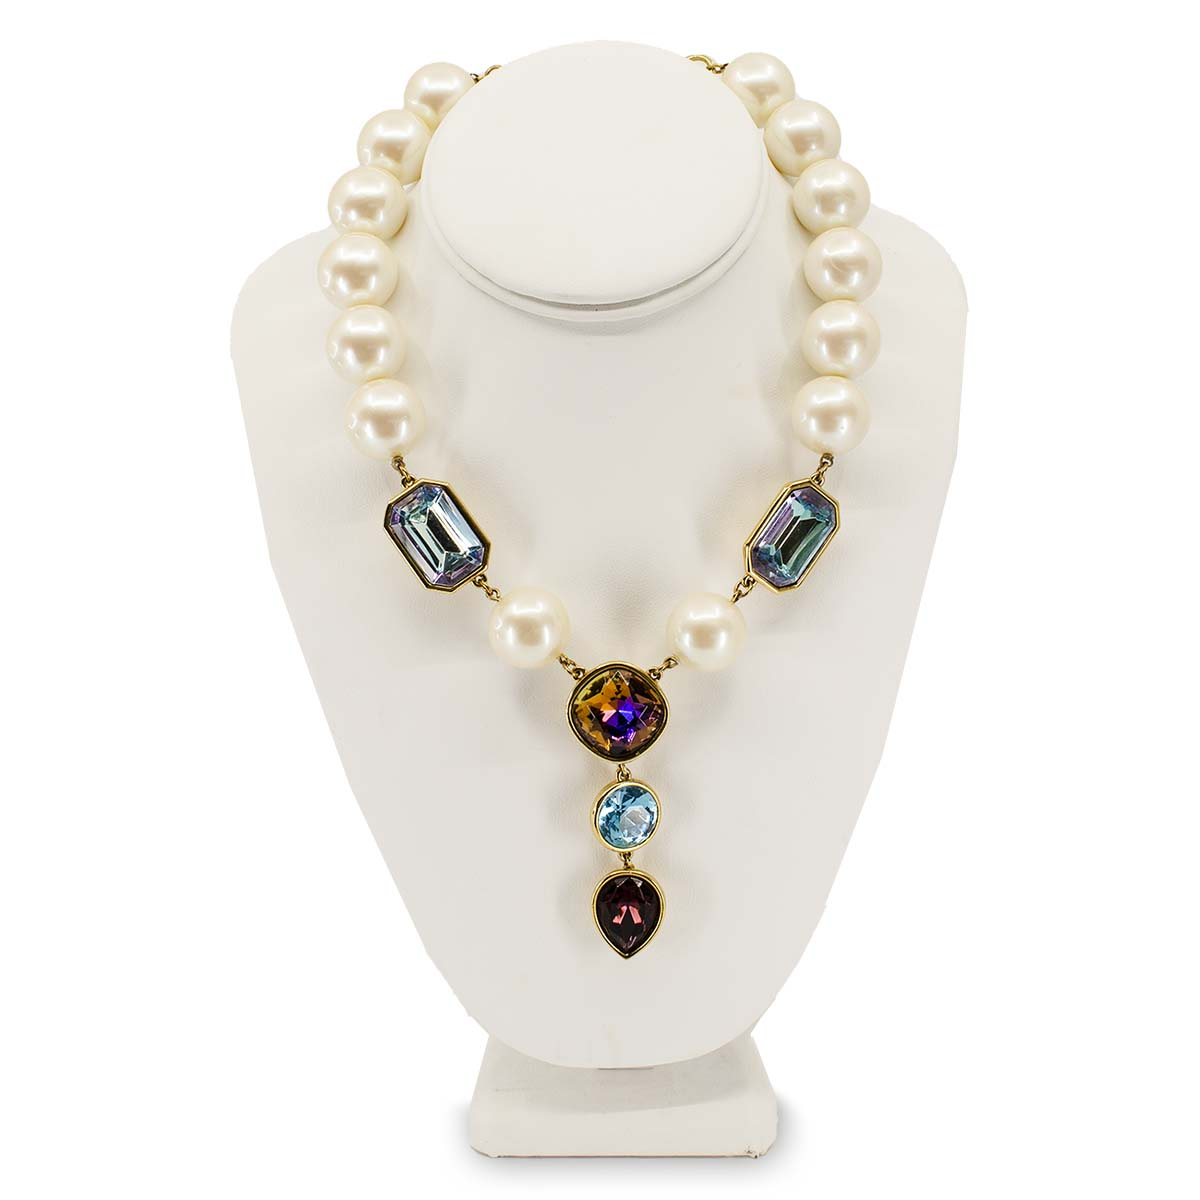 Yves Saint Laurent Ysl pearl necklace